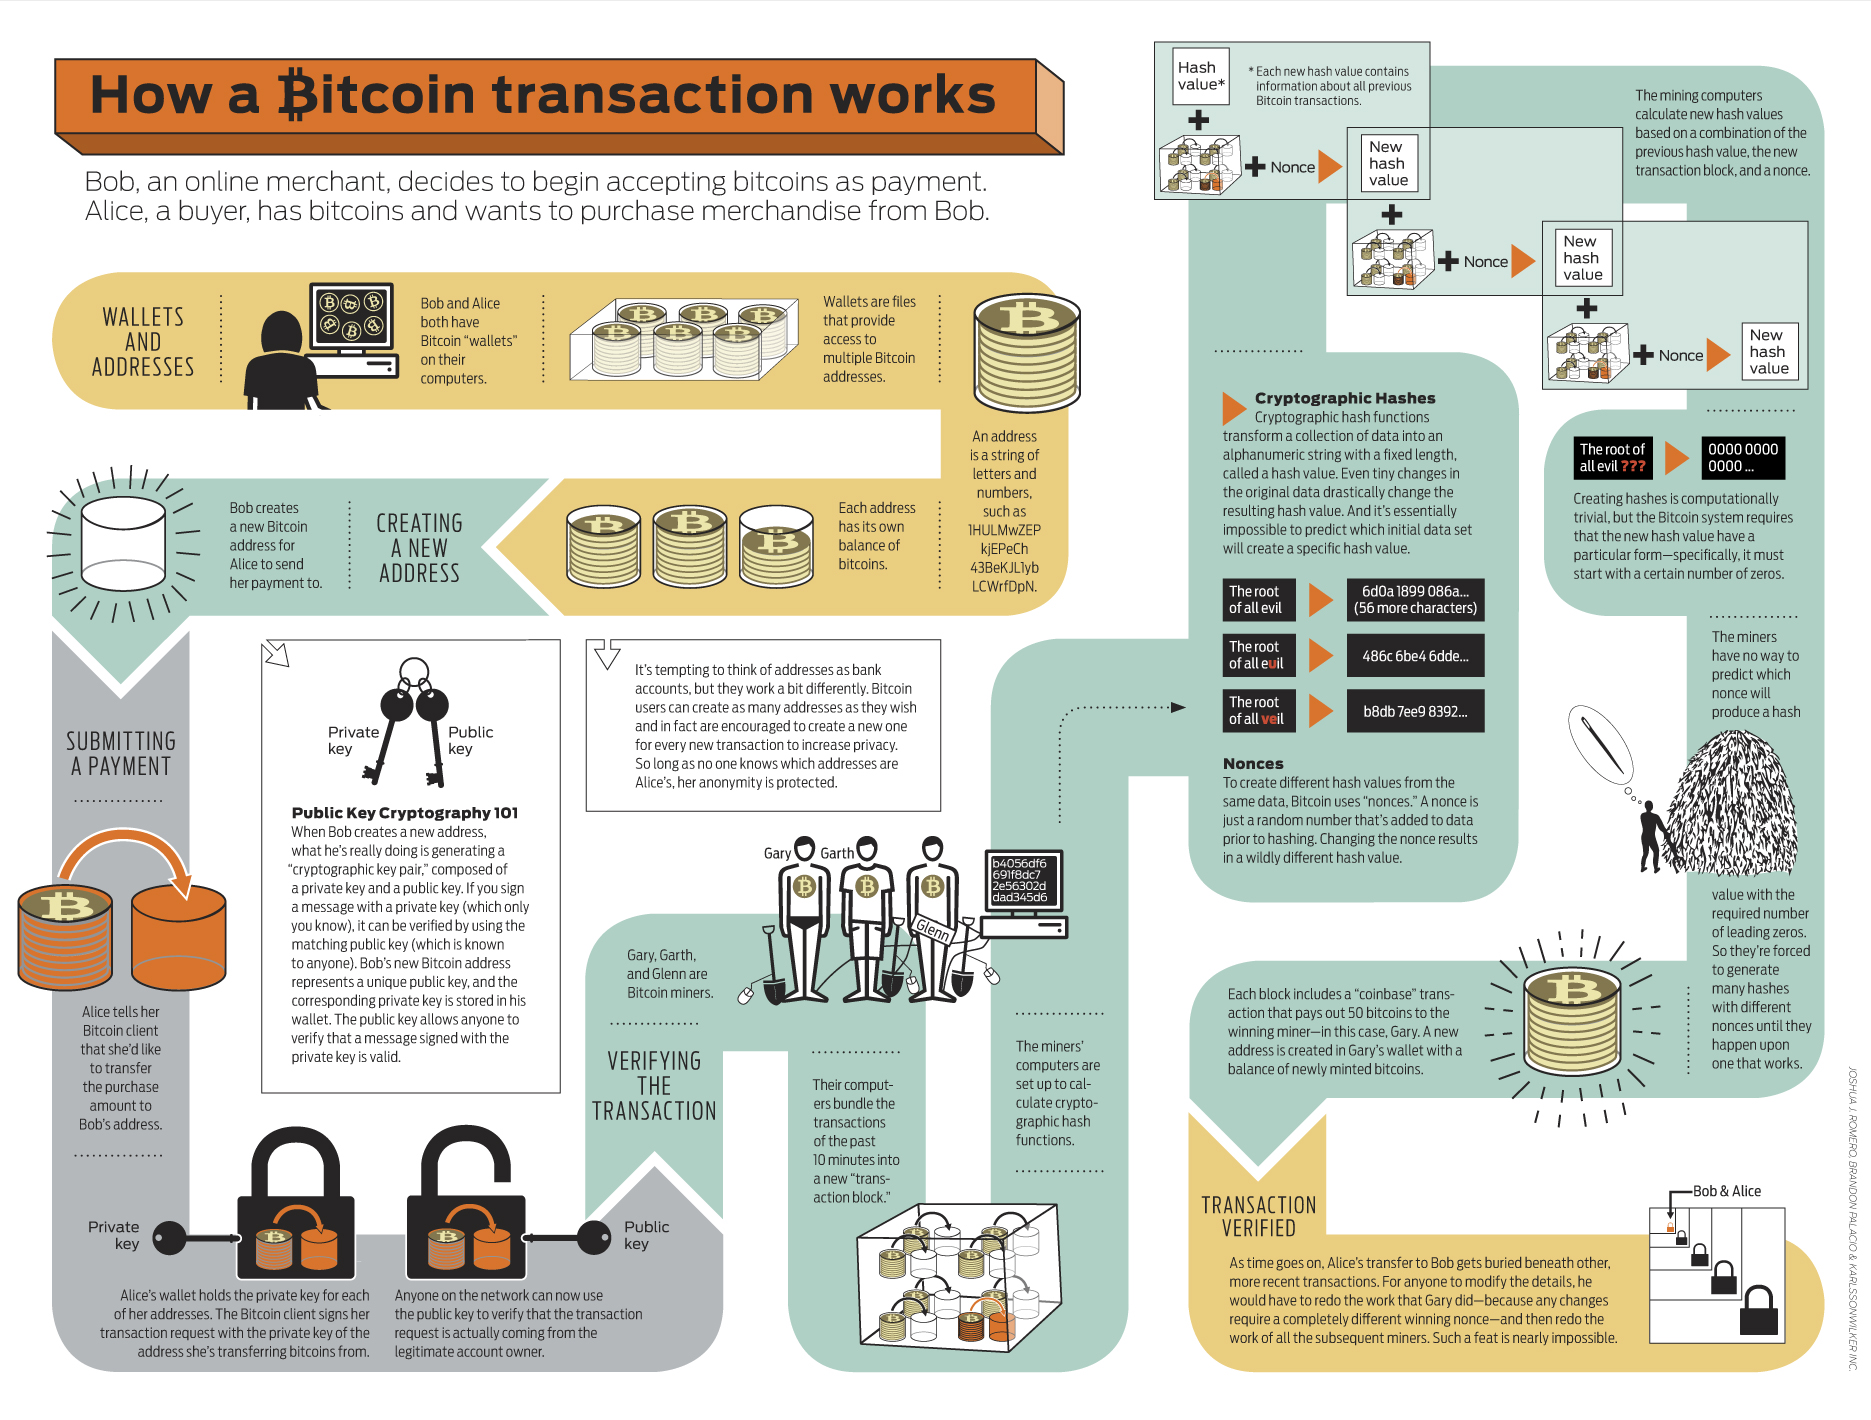 http://www.zerohedge.com/sites/default/files/images/user3303/imageroot/2013/05/20130512_BTC.jpg